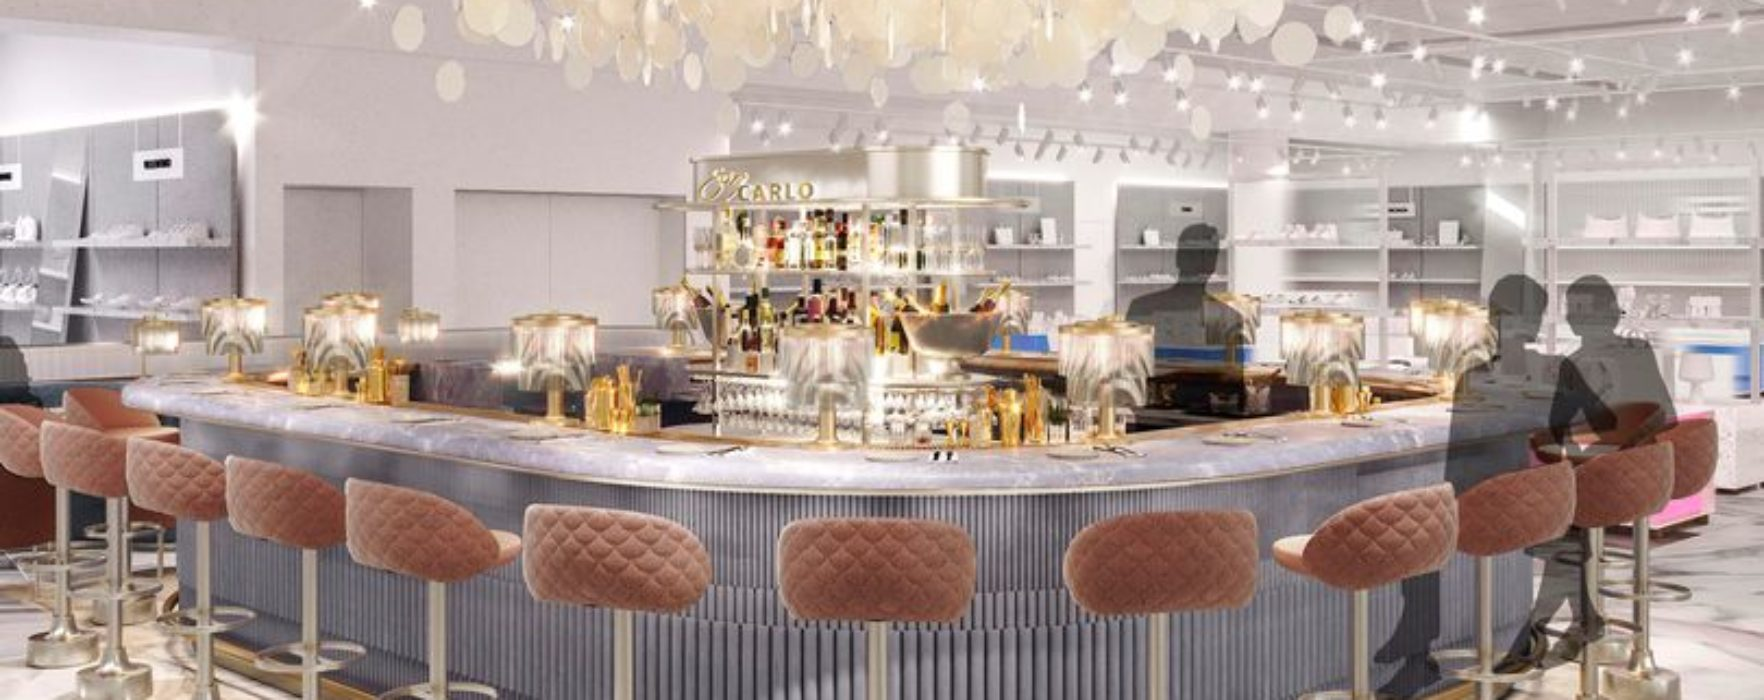 San Carlo set to be the new Selfridges hot spot at INTU Trafford Centre